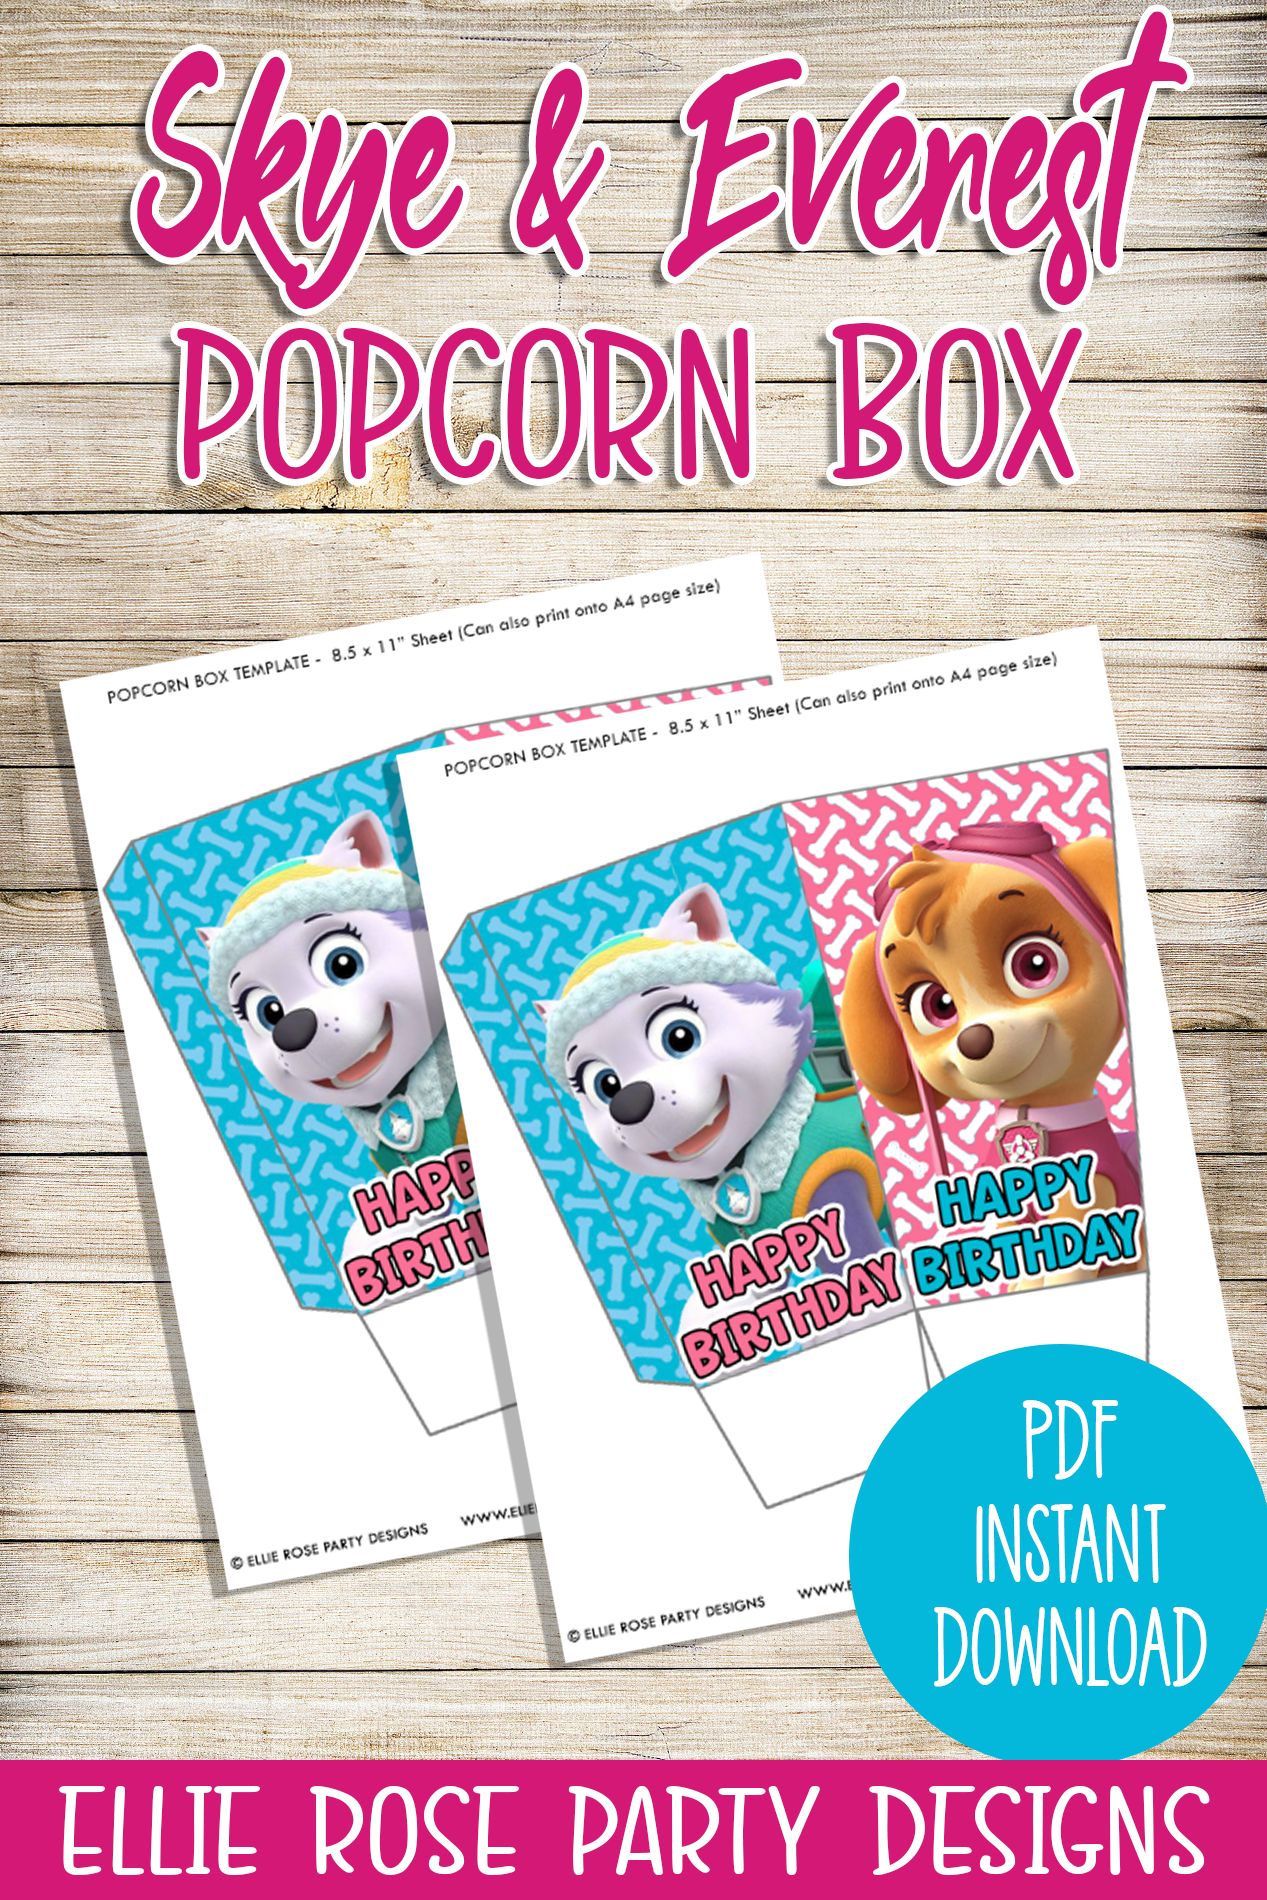 graphic regarding Popcorn Box Printable called Skye and Everest Crimson Popcorn Box